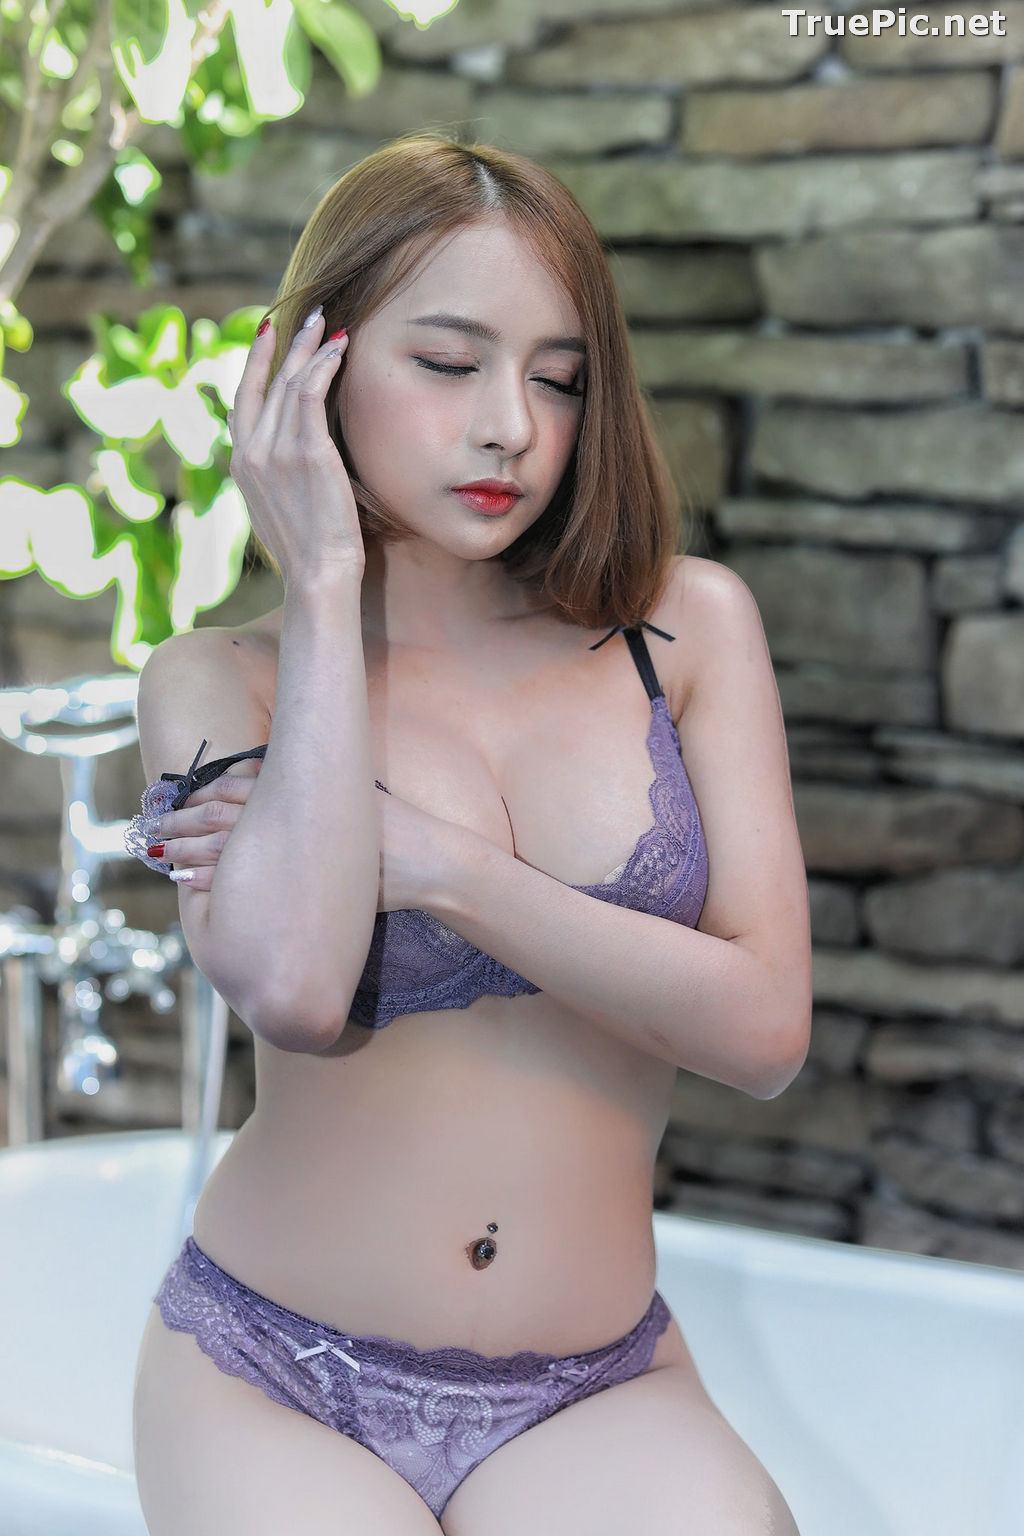 Image Thailand Model - ธนพร อ้นเซ่ง - Sexy In Purple Lingerie - TruePic.net - Picture-5